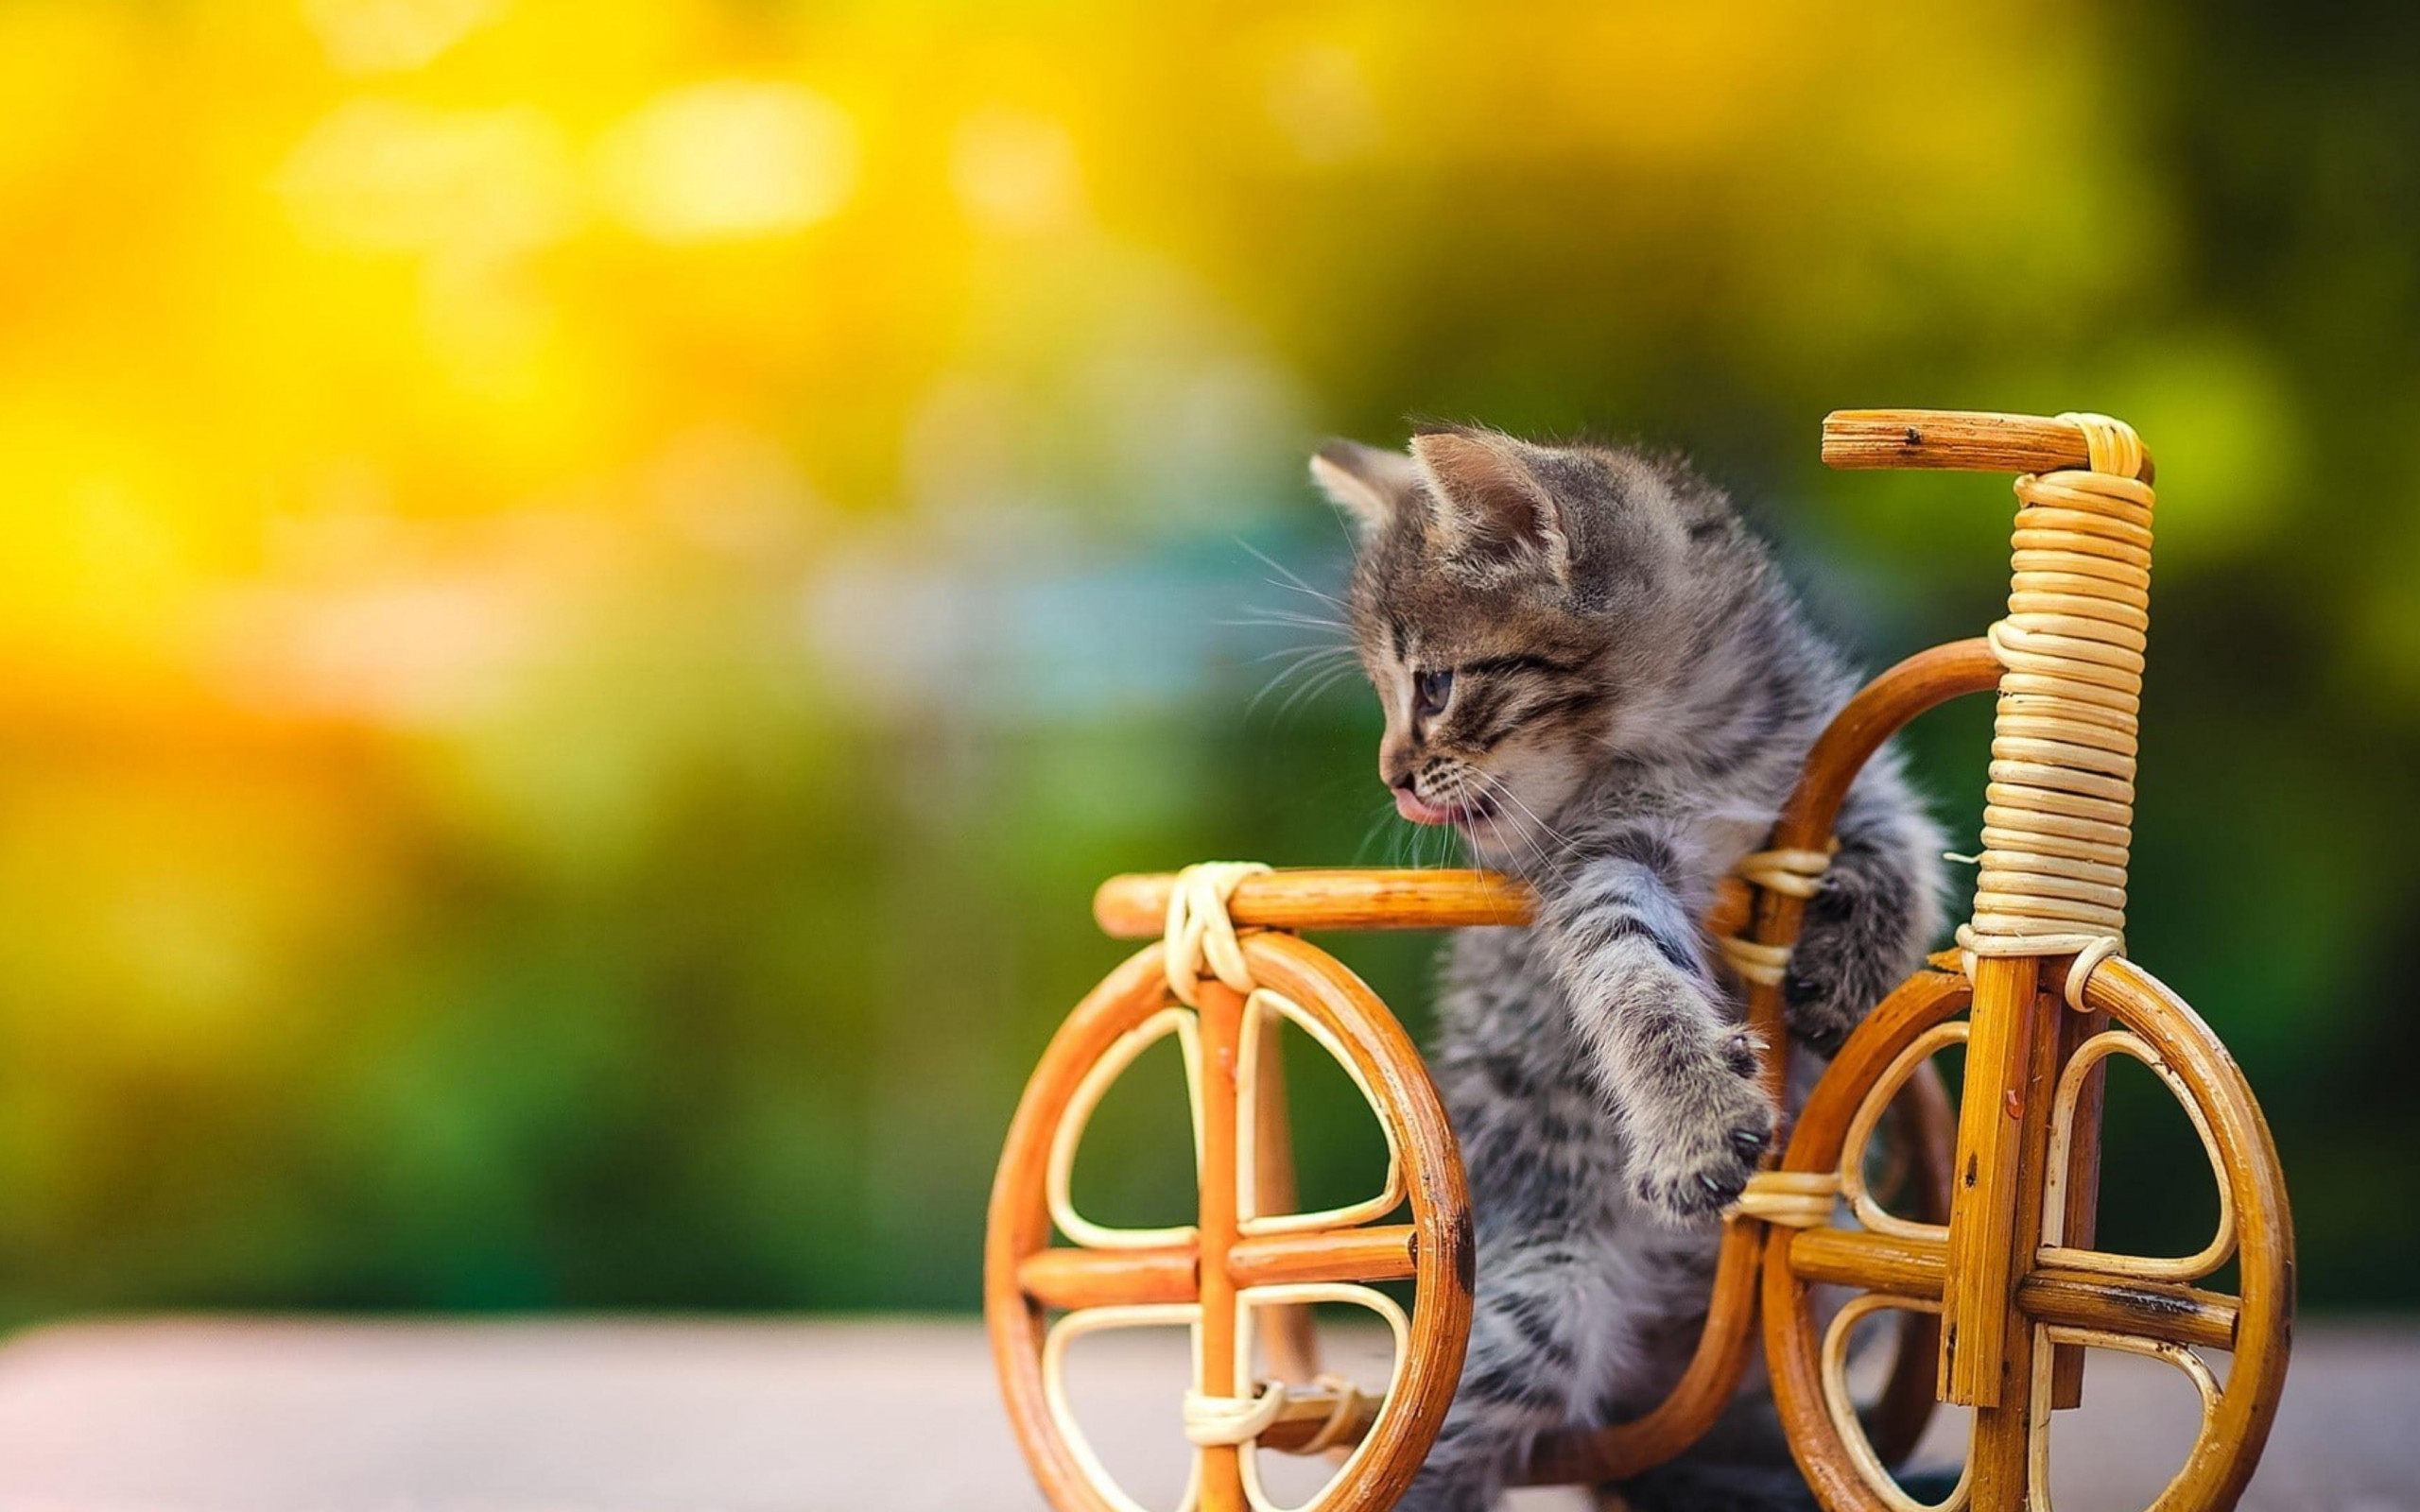 black and white kitten on wooden bicycle in blur green yellow background 4k animals